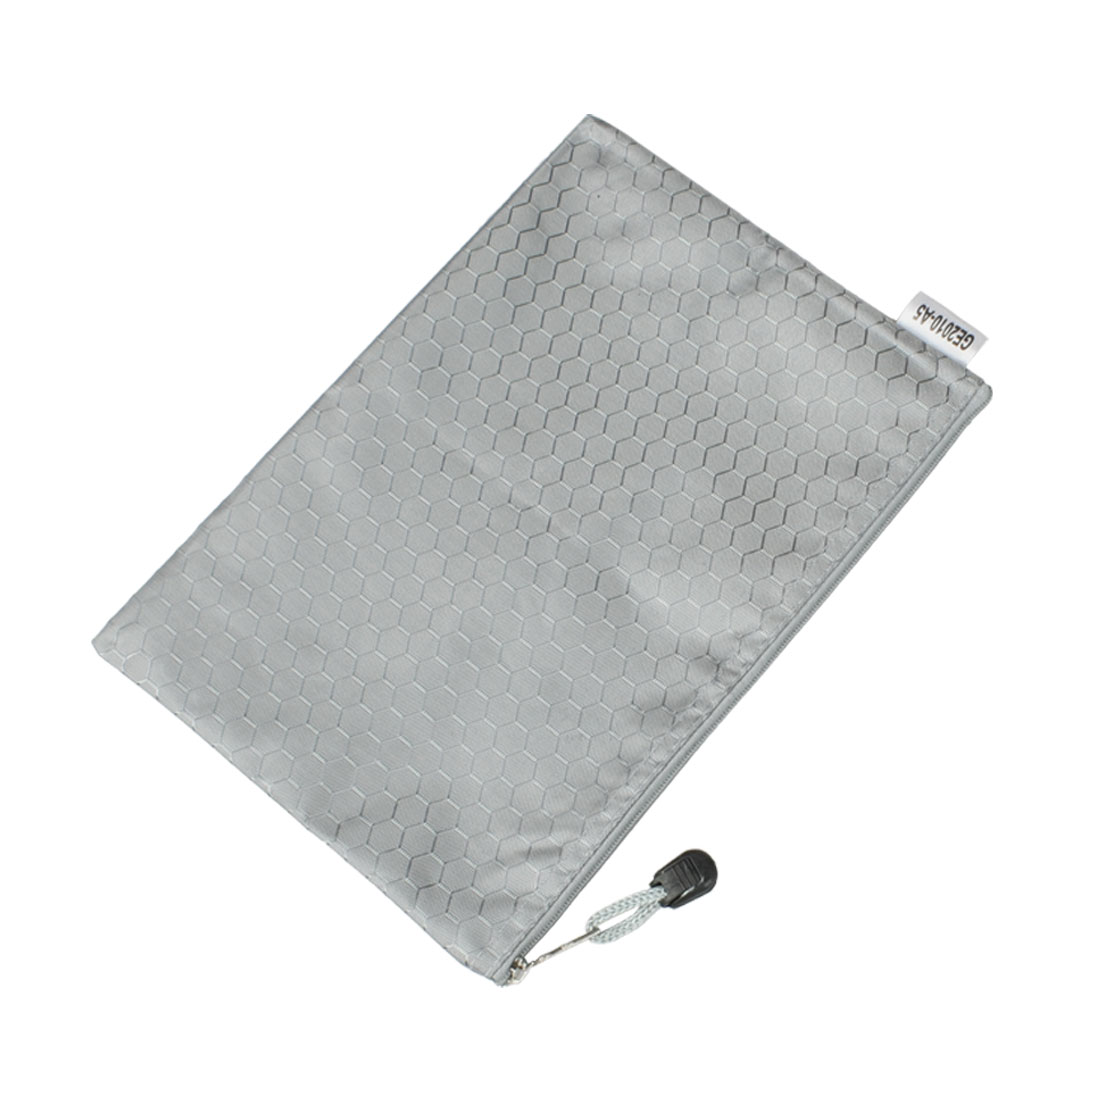 Gray Zipper Closure Nylon Hexagon Printed A5 Paper Files Bags Holder